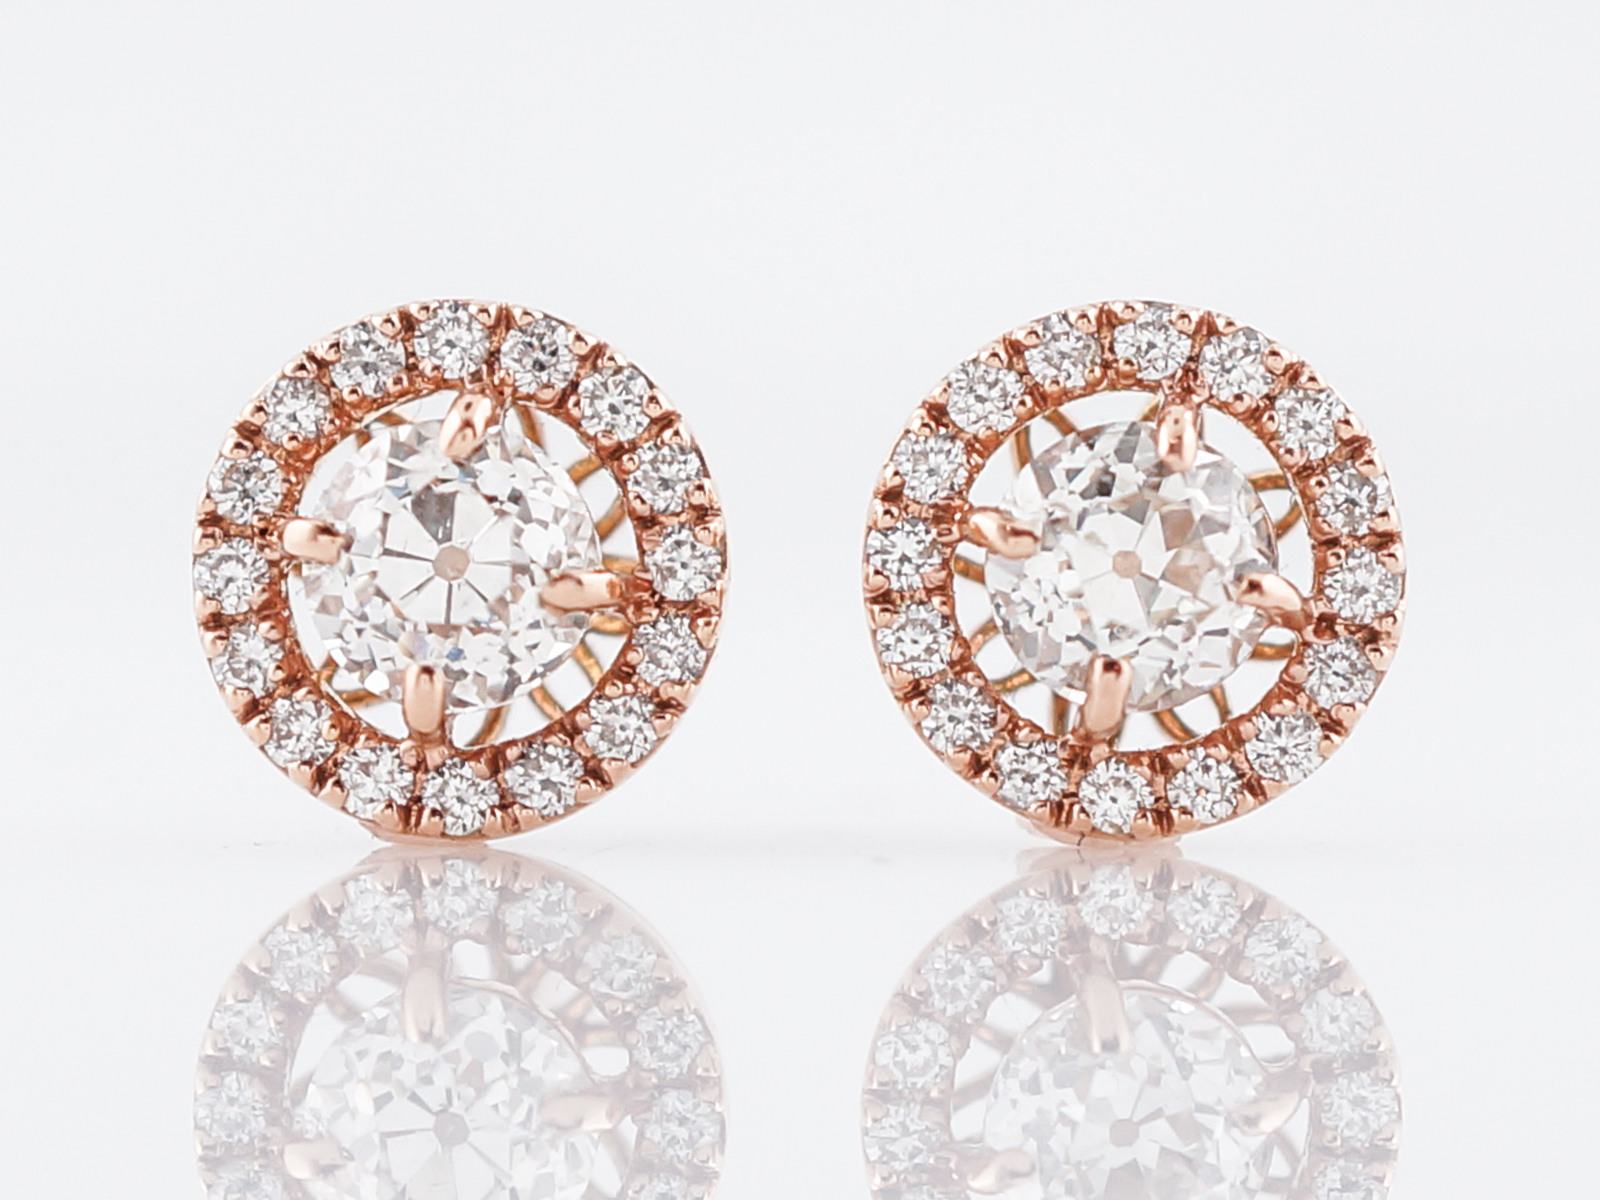 Modern Earrings 1 34 Old European Cut Diamonds In 14k Rose Gold